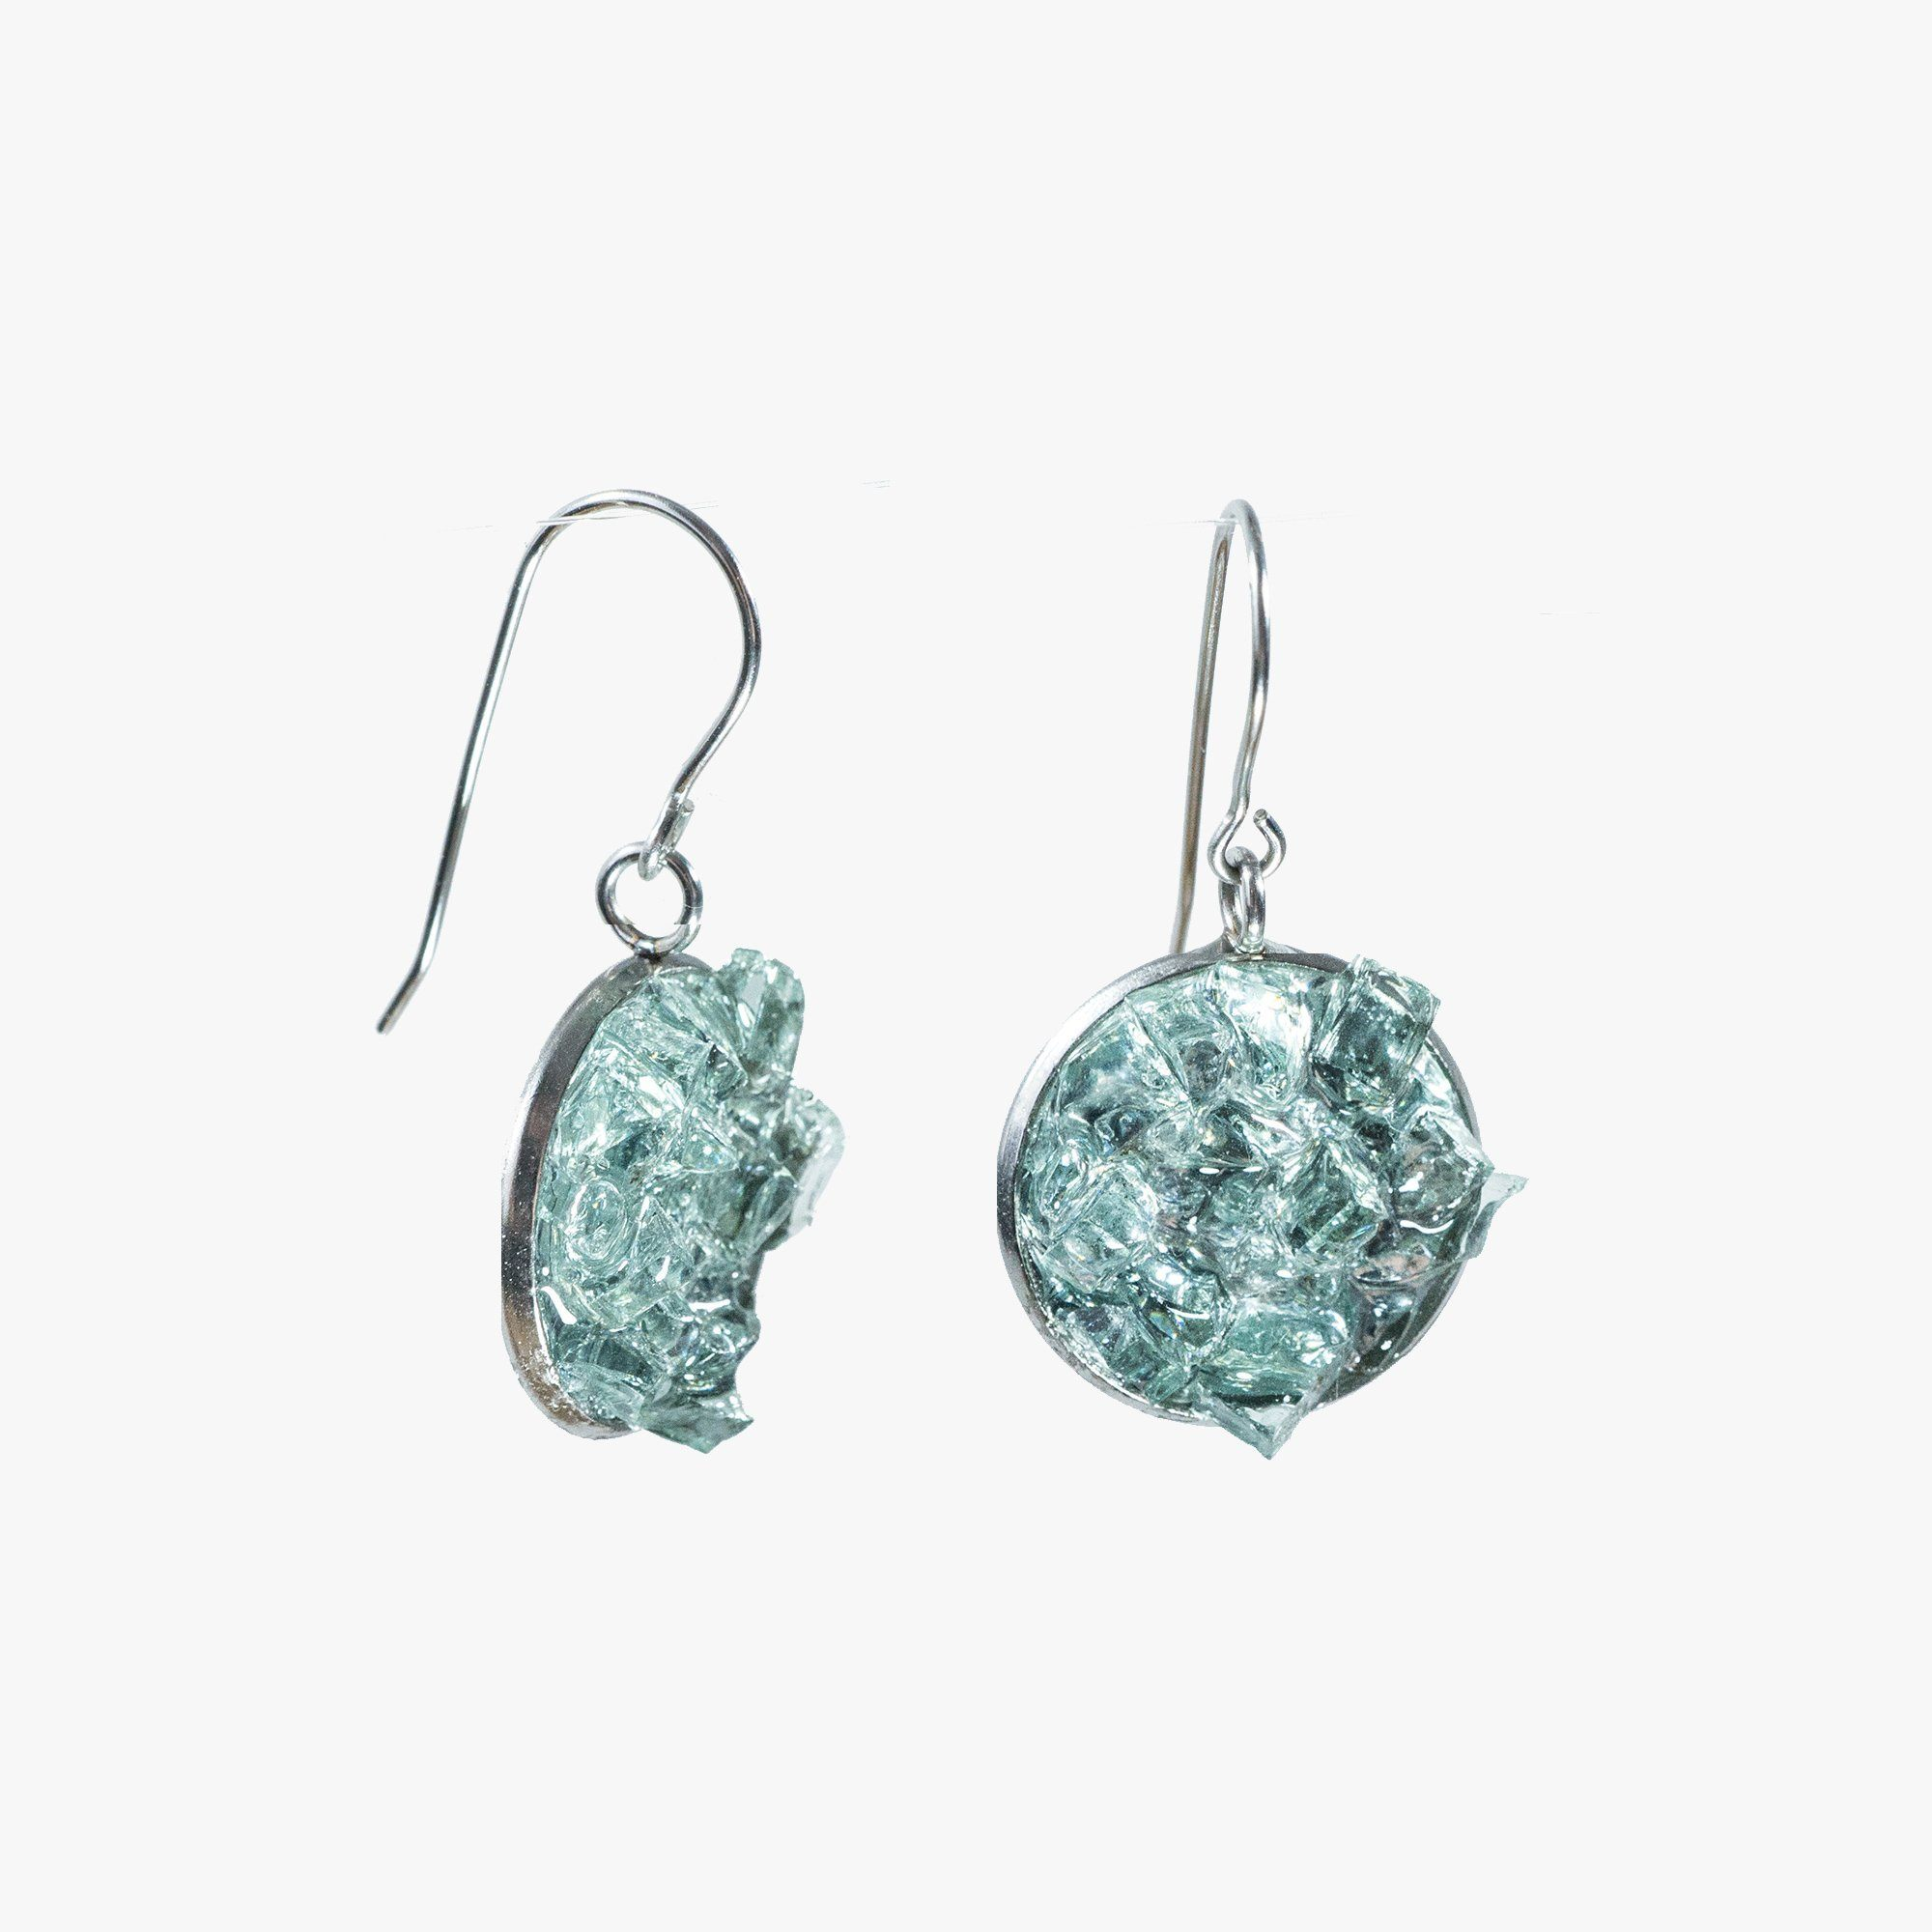 Auto Glass Earring - Medium Aqua Cluster Cleveland Street Glass